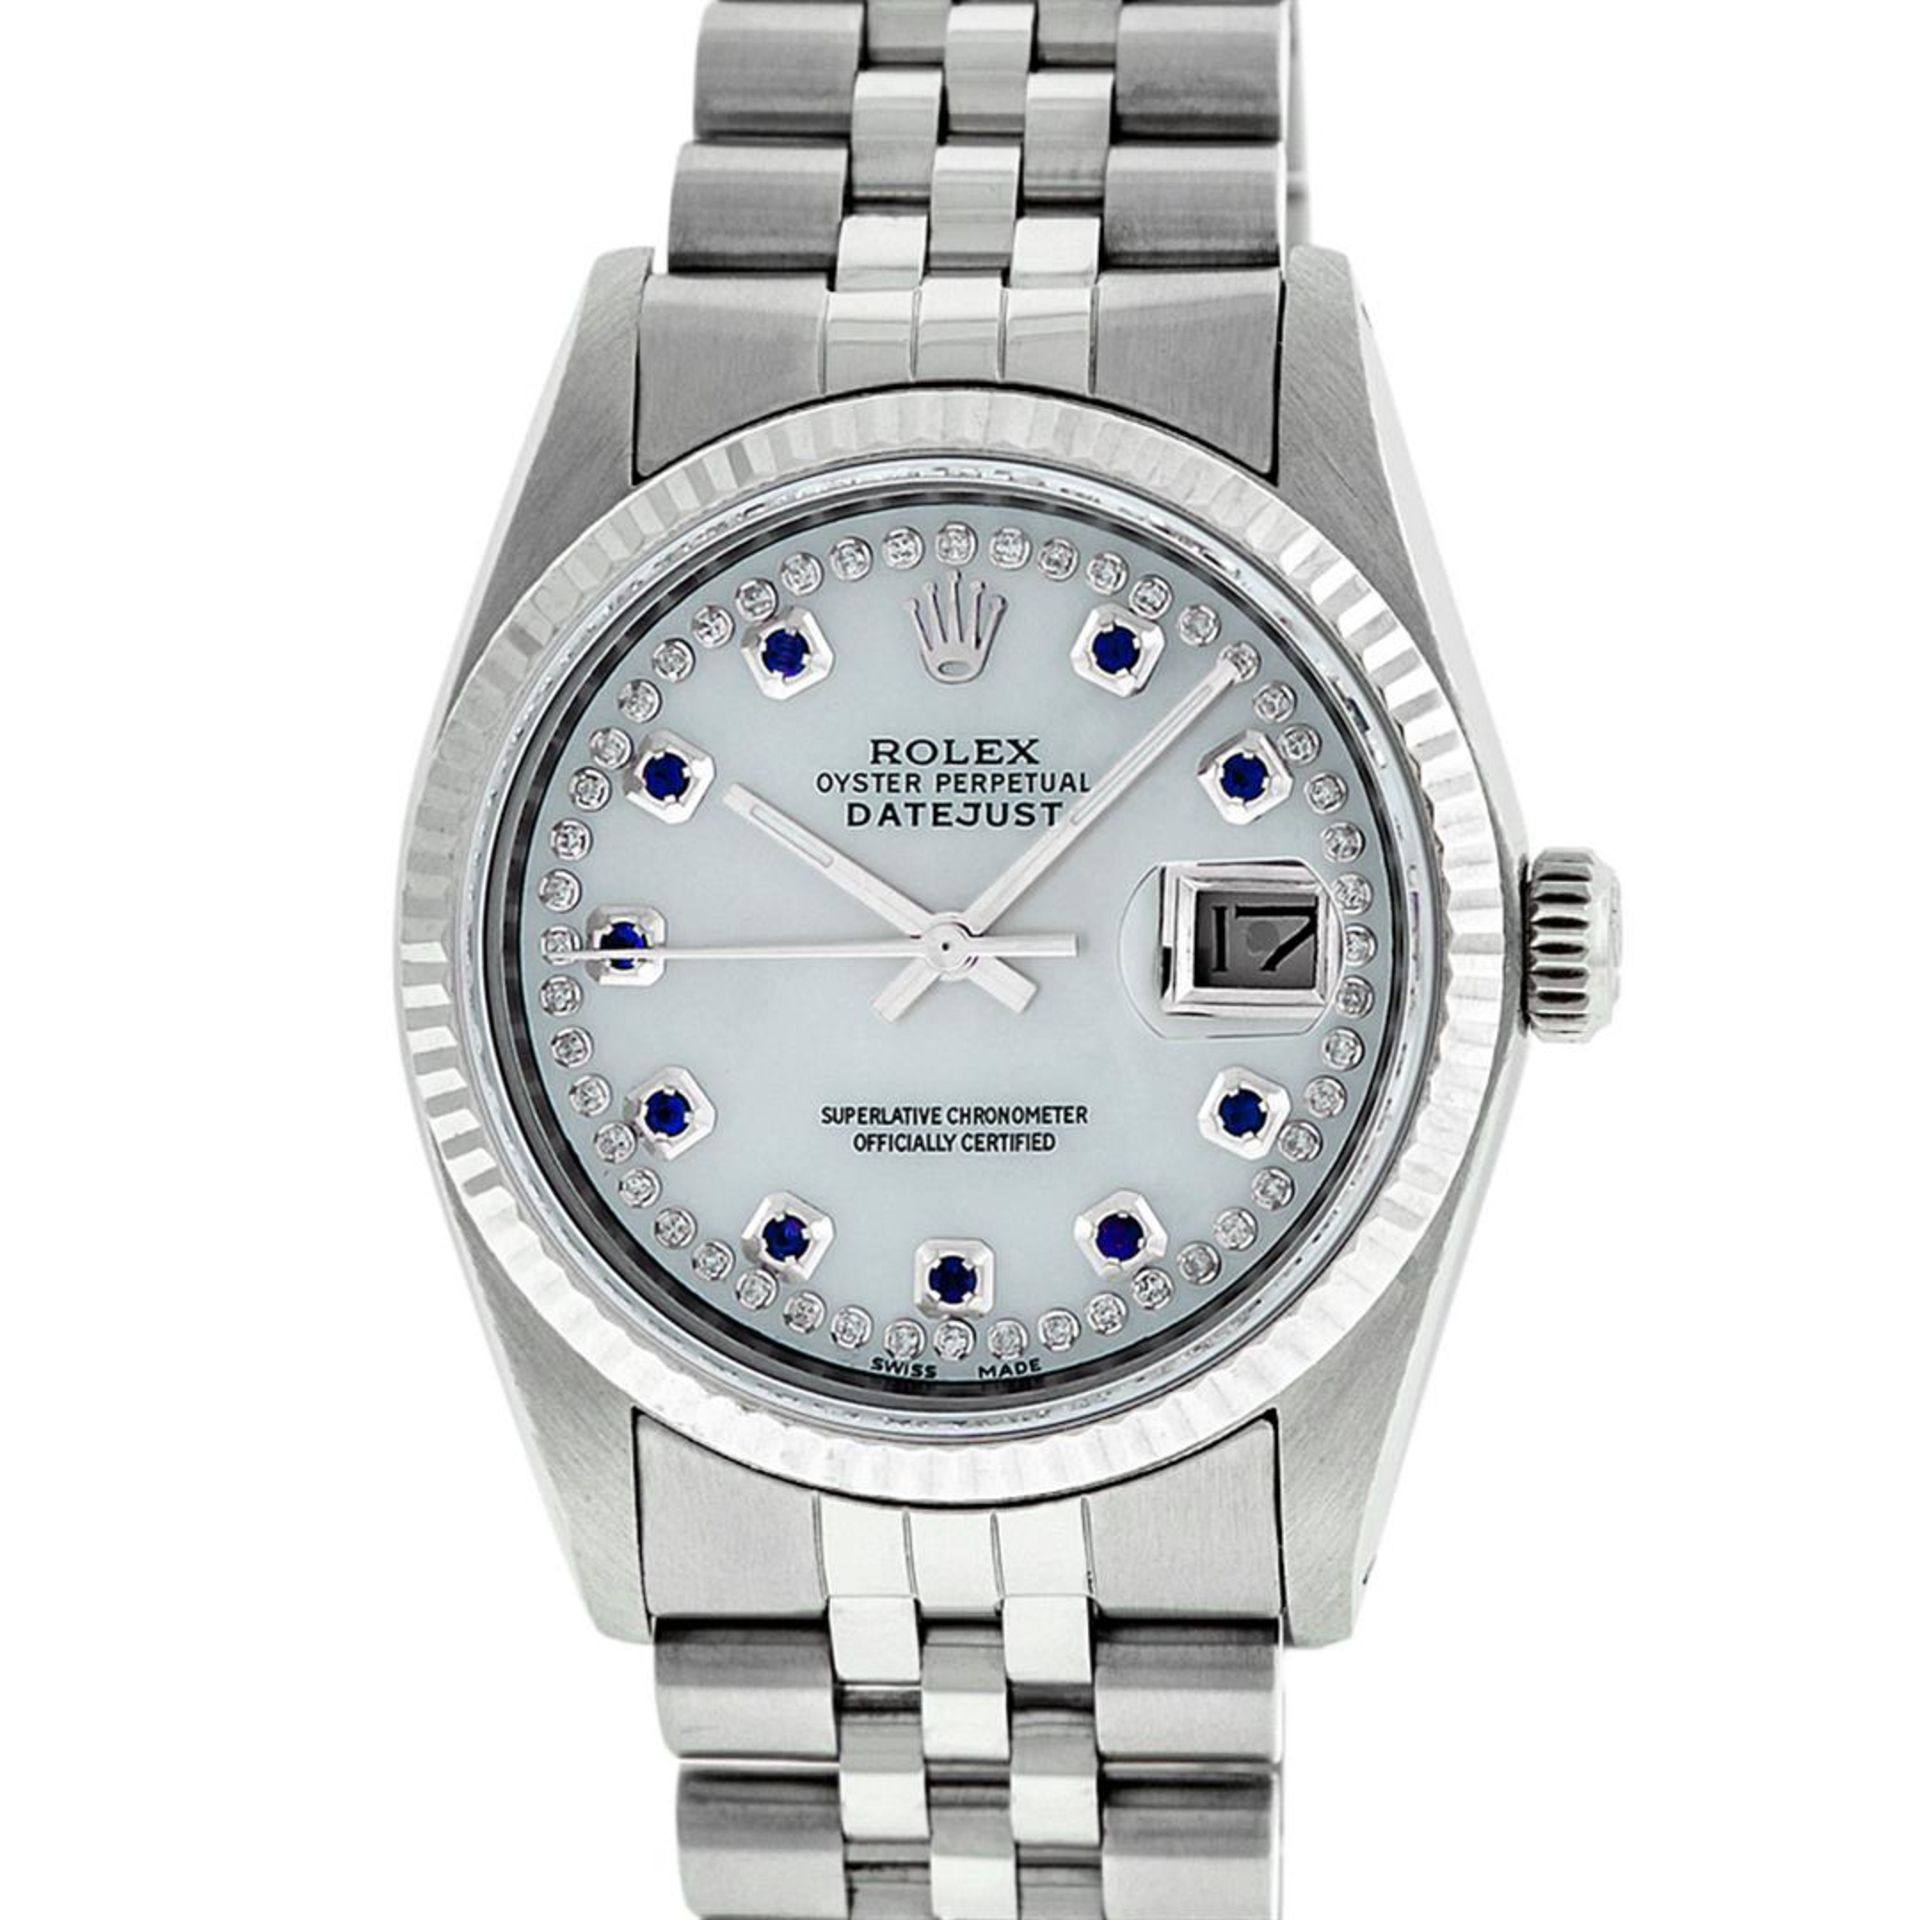 Rolex Mens Stainless Steel Mother Of Pearl Diamond & Sapphire Datejust Wristwatc - Image 2 of 8